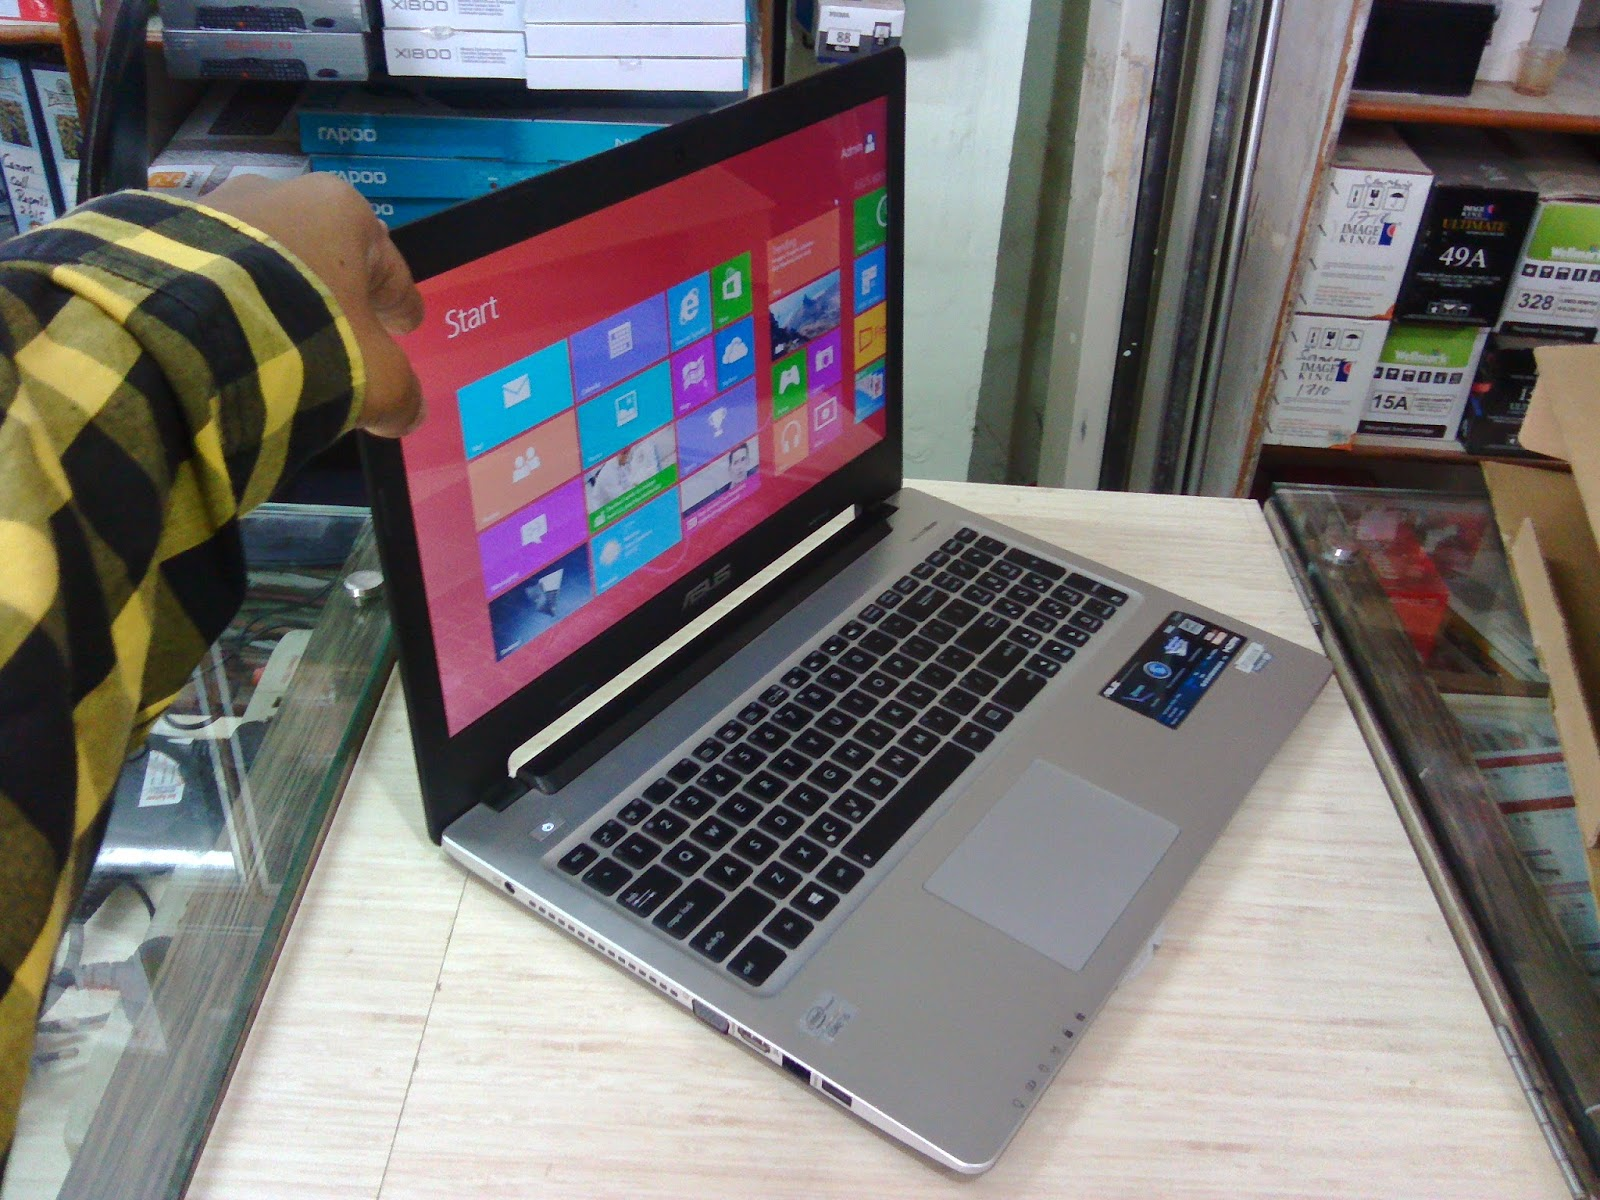 Asus S56CA Ultrabook Laptop (i5,4GB,750GB) Price, Specification & Review